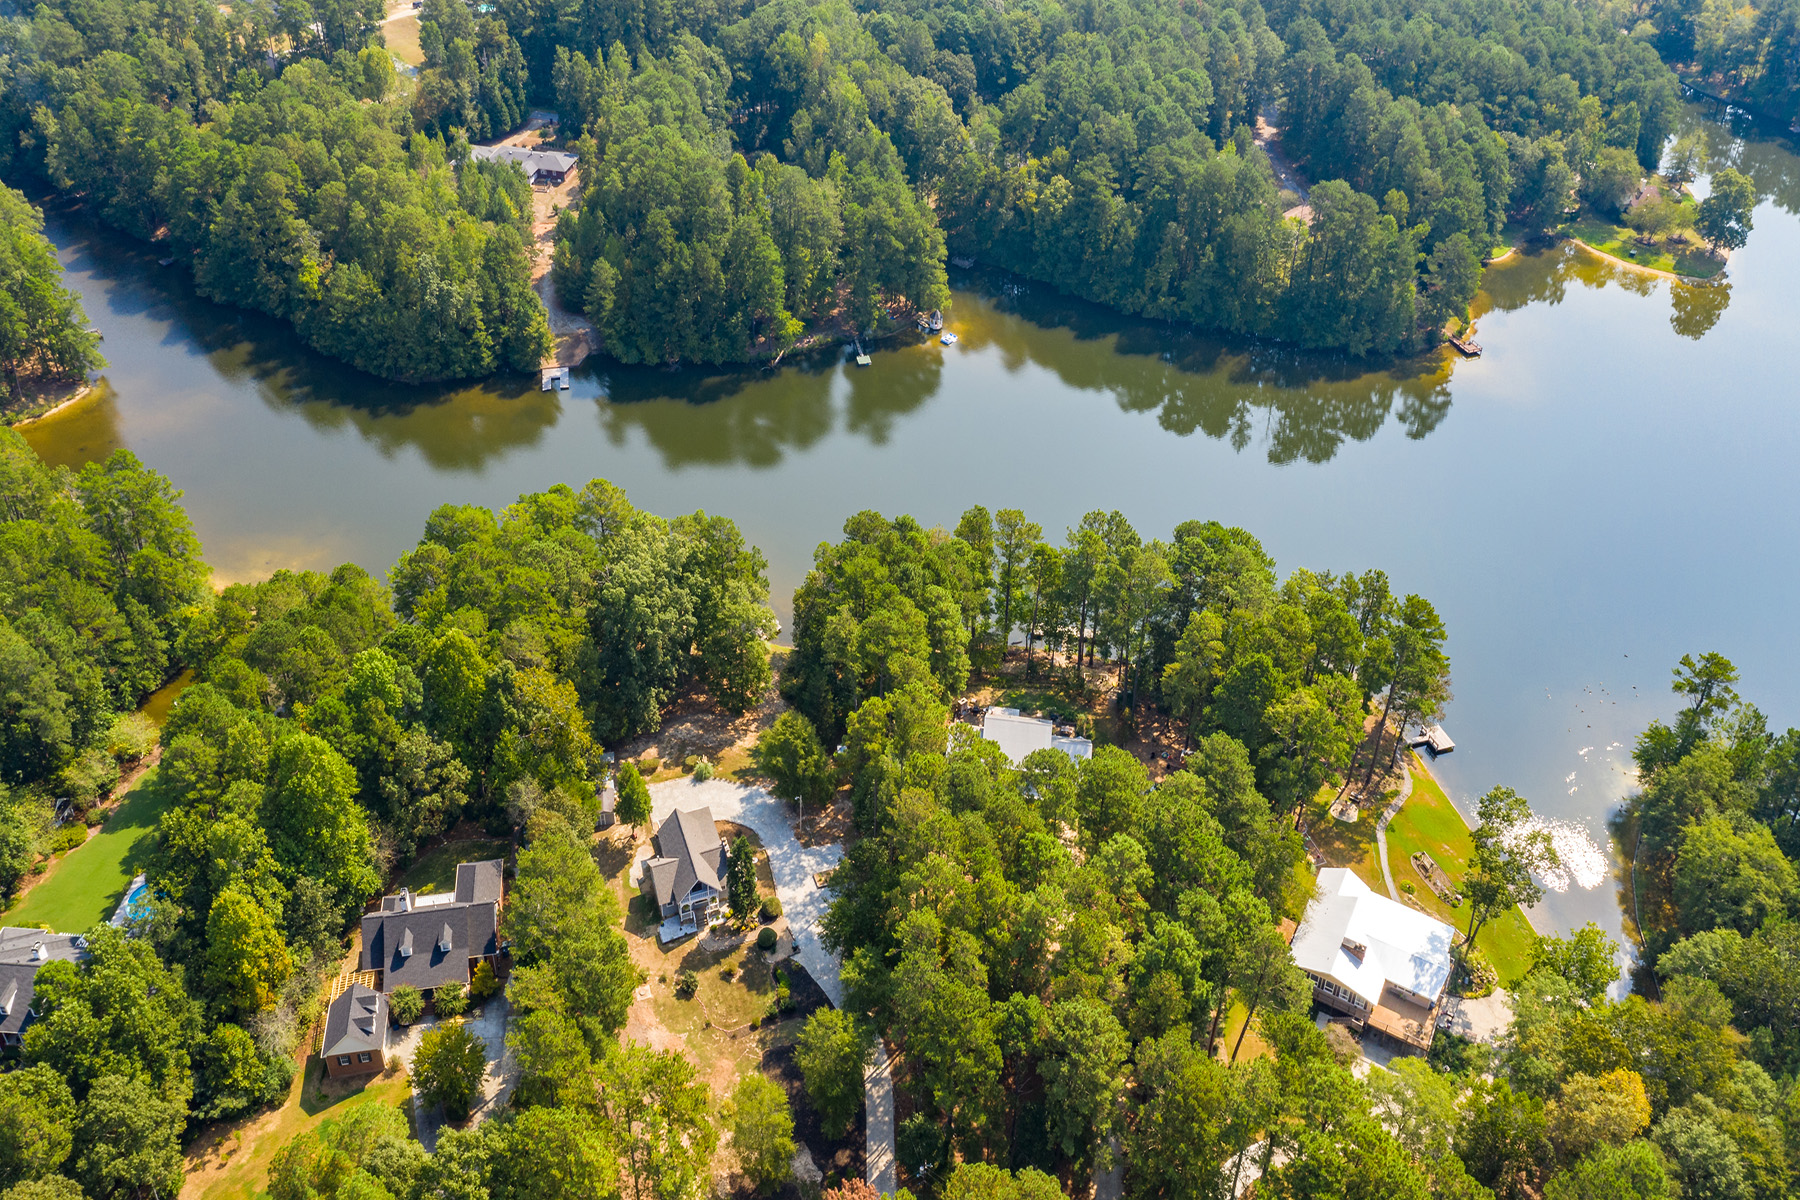 Single Family Homes for Sale at Charming Lakeside Cottage 405 West Lake Dr Oxford, Georgia 30054 United States